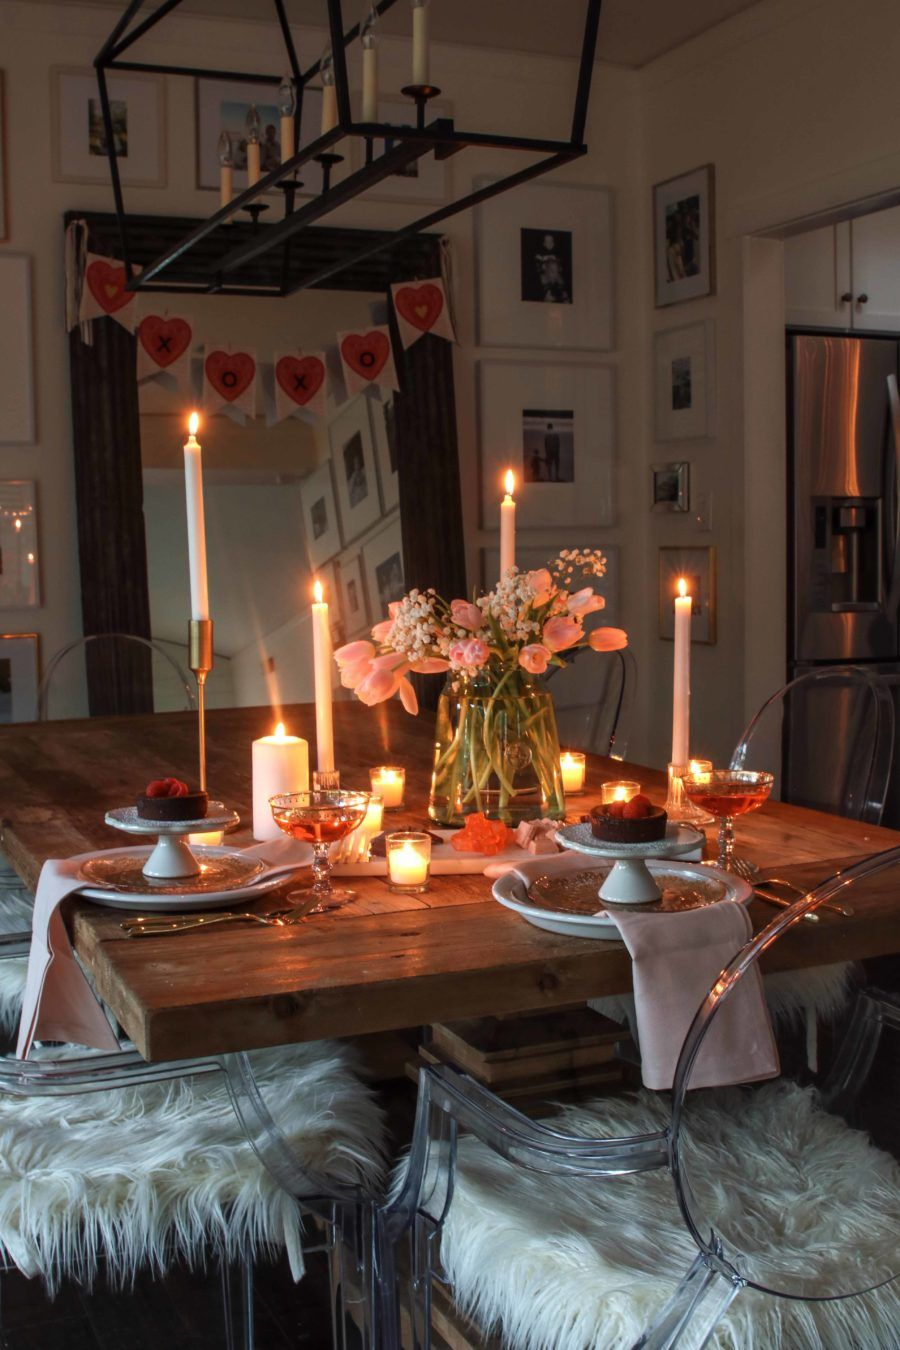 Candlelit Dinner For 2 Set This Neutral And Simple Romantic Table Using Fresh Flowers And Romantic Dinner Decoration Romantic Dinner Tables Candlelit Dinner